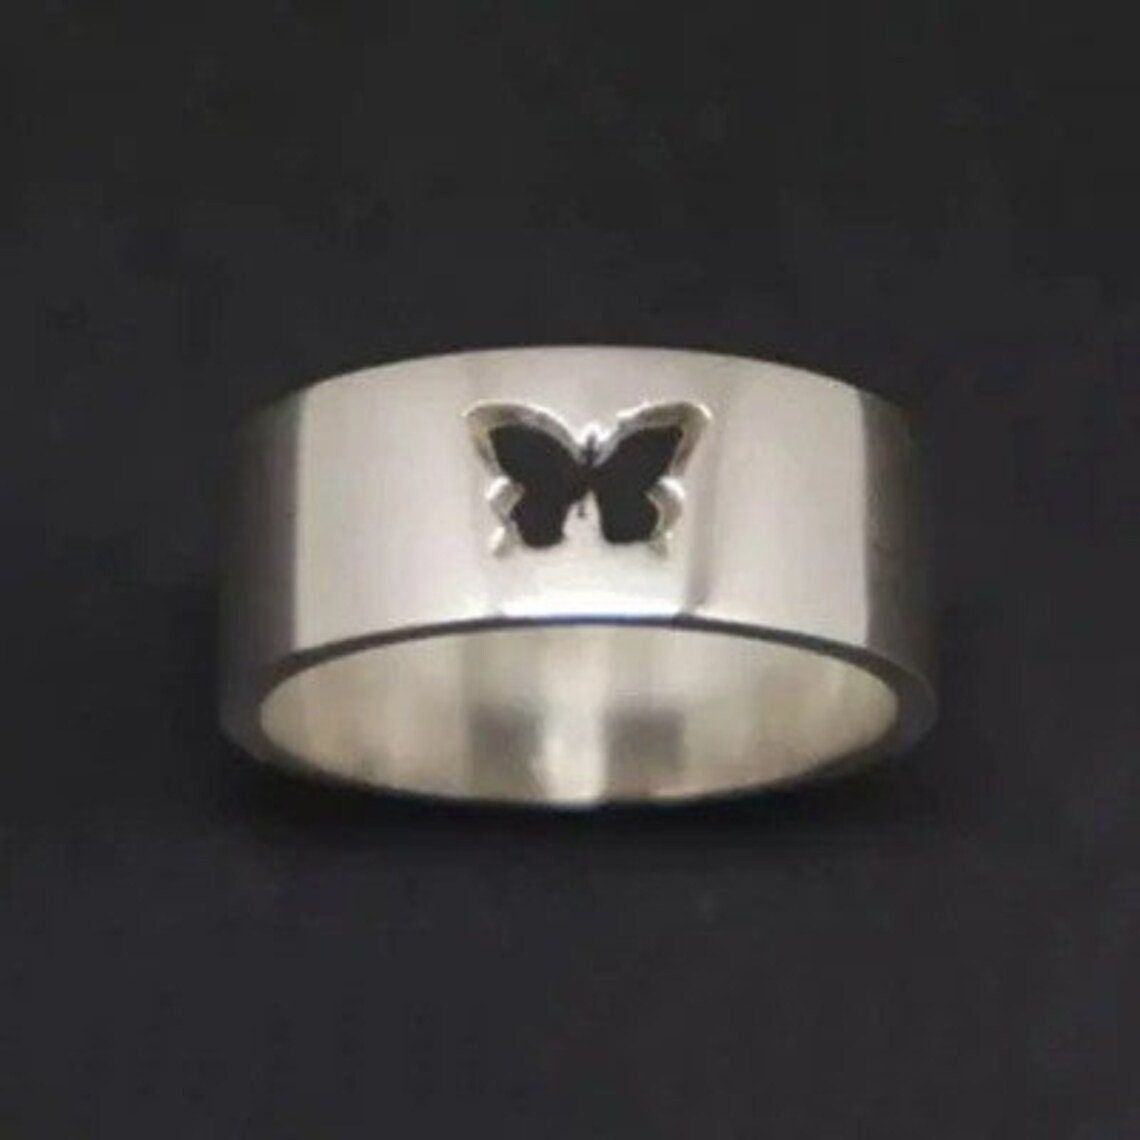 Butterfly Ring Set Matching Rings For Couples Butterfly Couple Ring Set His and Her Promise Ring Stackable Ring Anniversary Gift Dainty Ring Product Information : Are you struggle to find a unique gift for your loved one..? Best Gift for lovers - Promise Couple Rings Set Material : 925 sterling silver Ring Size: We can make from US 5 - 11 Butterfly Ring Best Gift For : Lovers, Girlfriend, Boyfriend, Engagement, Husband, Wife, Wedding, Anniversary, Christmas. Let this couple rings be your mini-ce